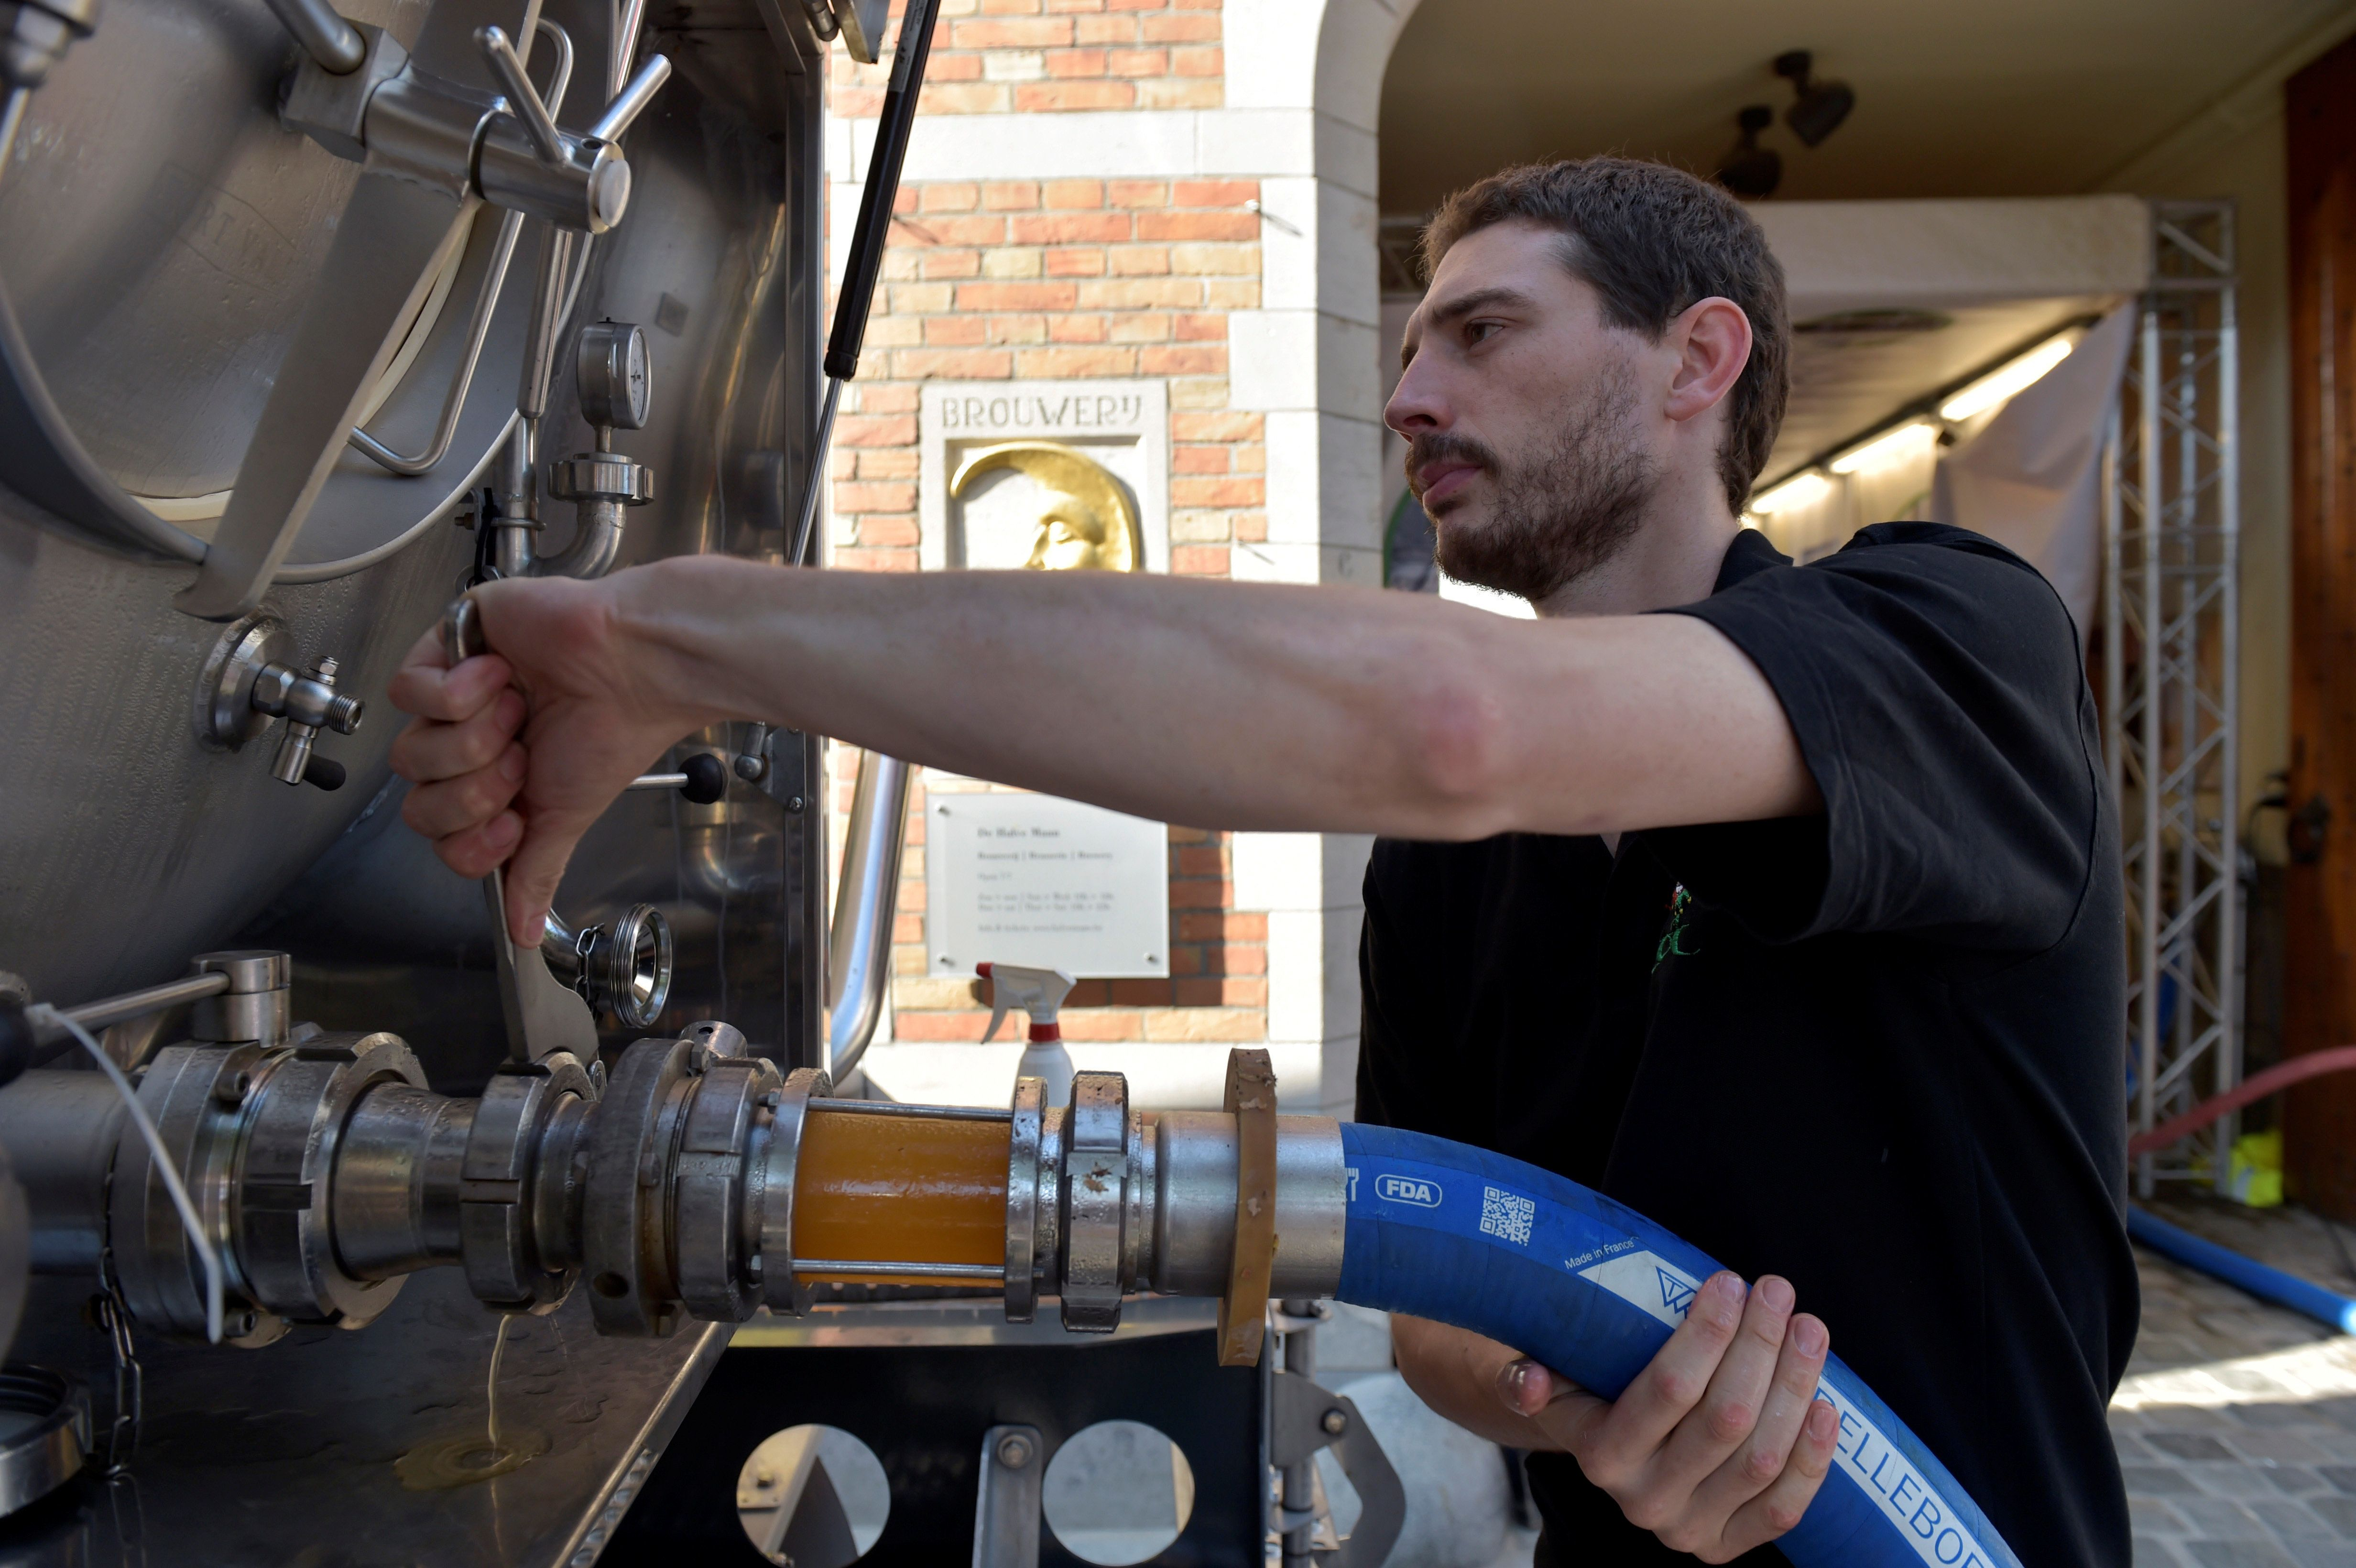 An employee of De Halve Maan brewery connects a pipe to feed beer into a truck  in Bruges, September 15, 2016. REUTERS/Eric Vidal